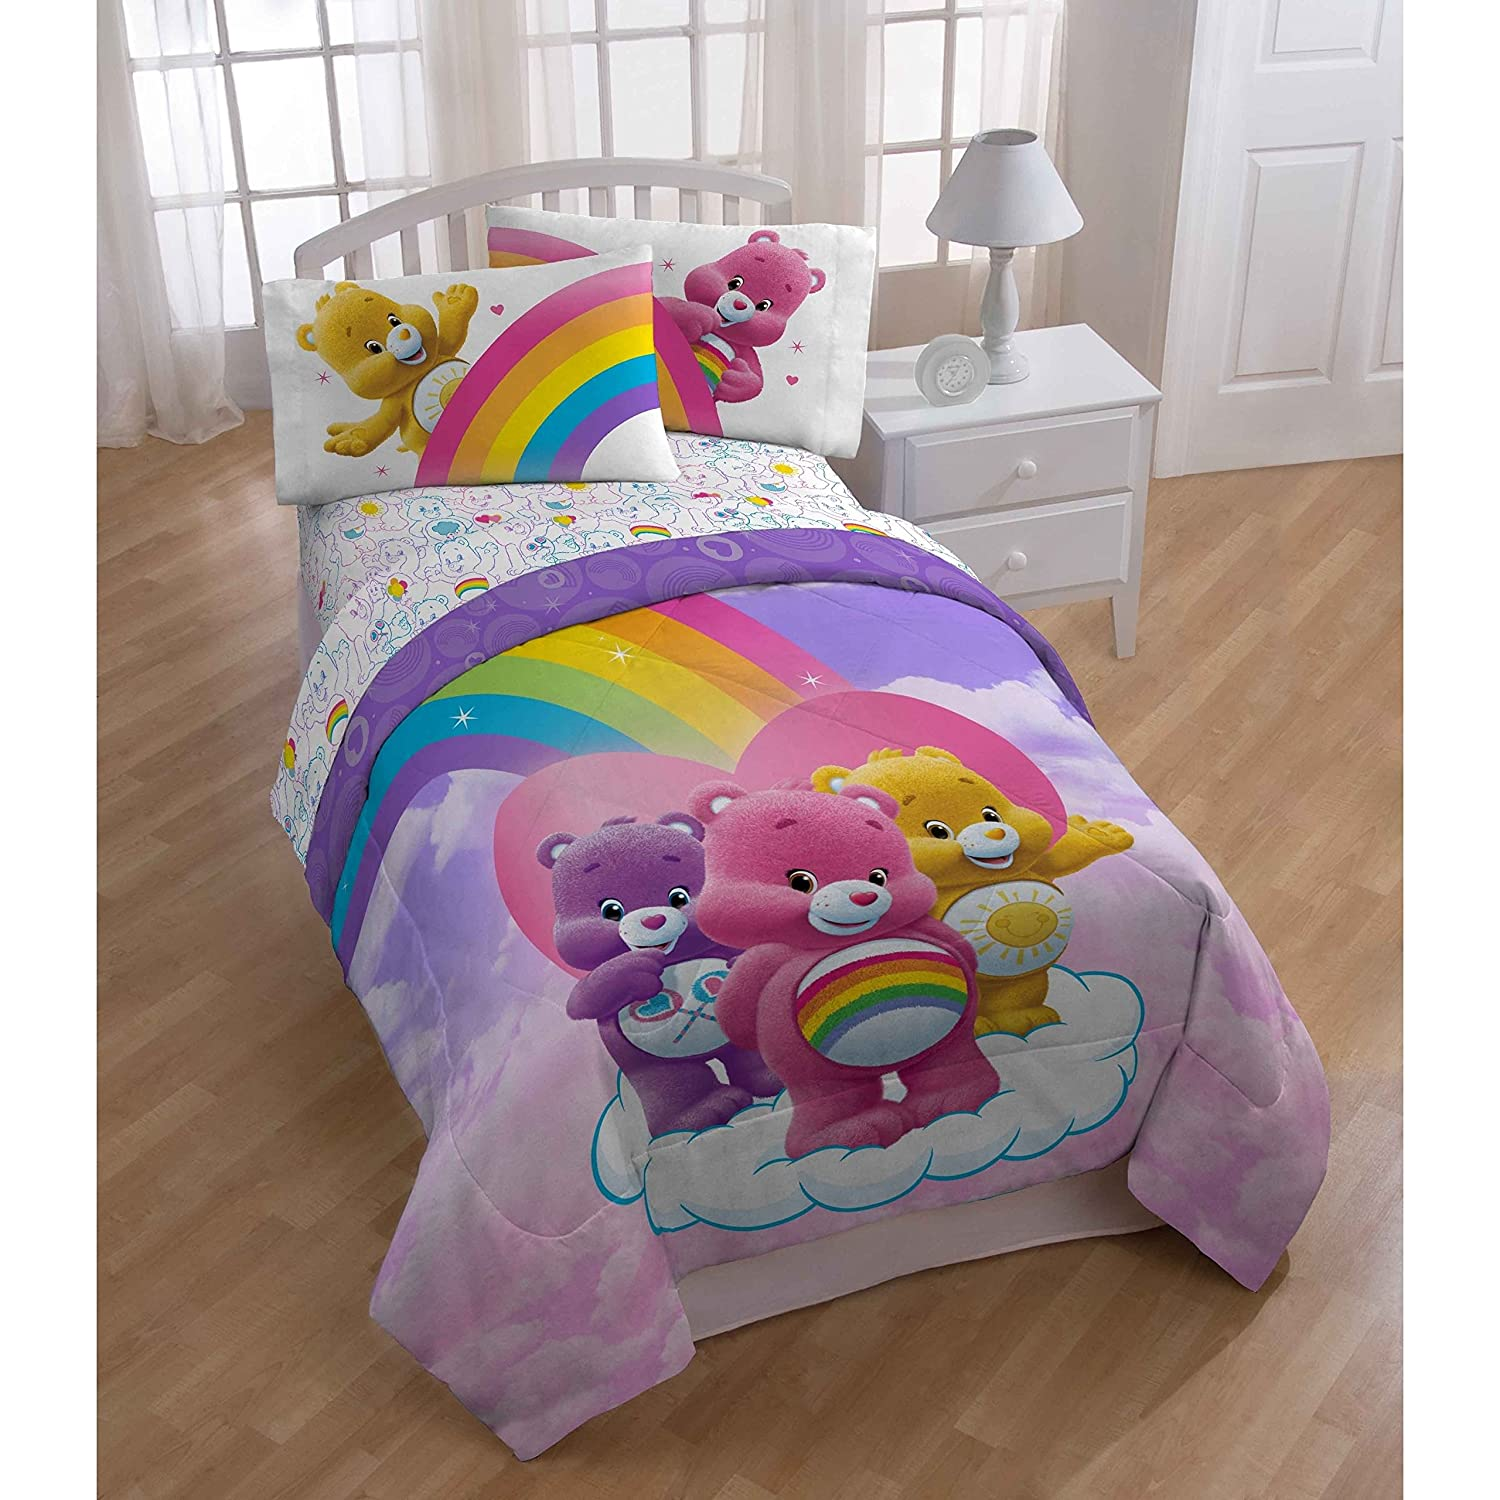 Ln 1 Piece Girls Rainbow Care Bears Themed Comforter Twin, Happy Fun Cheer Share Funshine Bear Character Themed Bedding Carebears TV Show Movie Loveable Pattern, Polyester